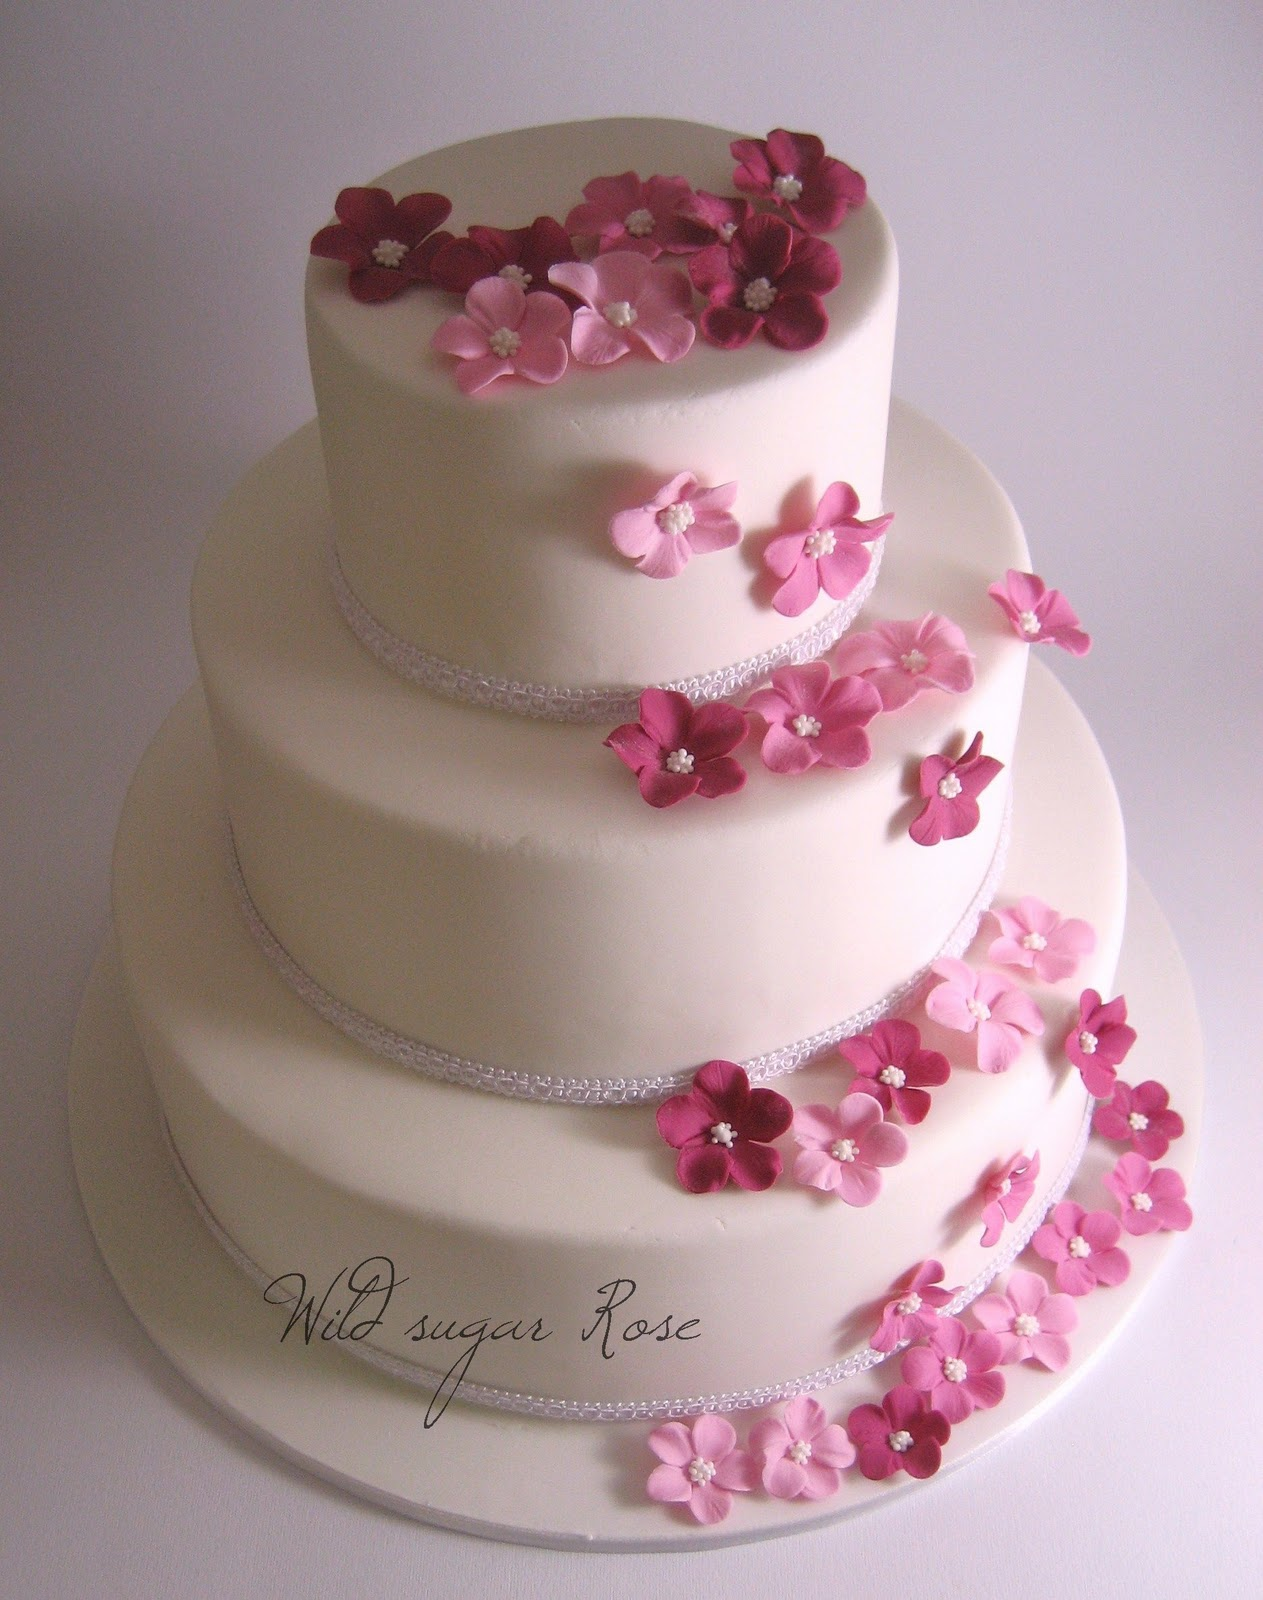 Wild sugar Rose wedding cakes cupcakes and cake